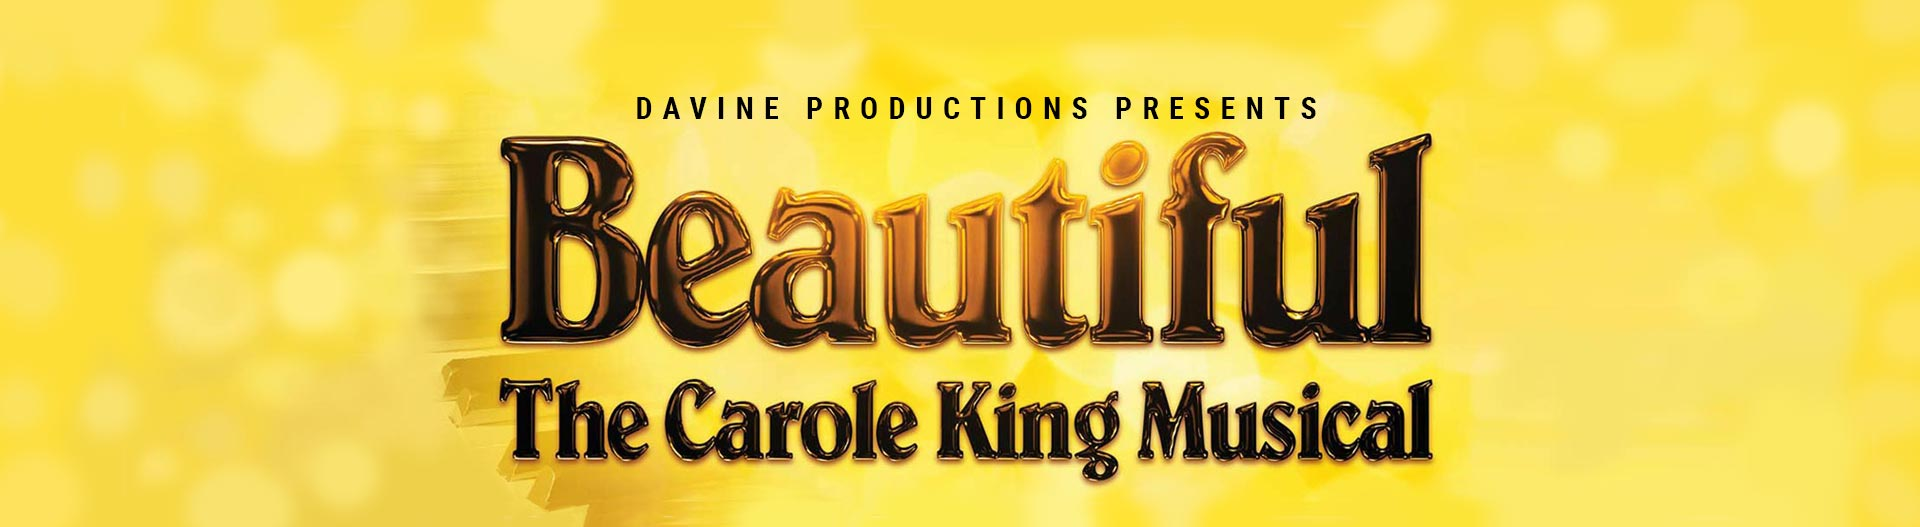 Beautiful, The Carole King Musical By Davine Productions